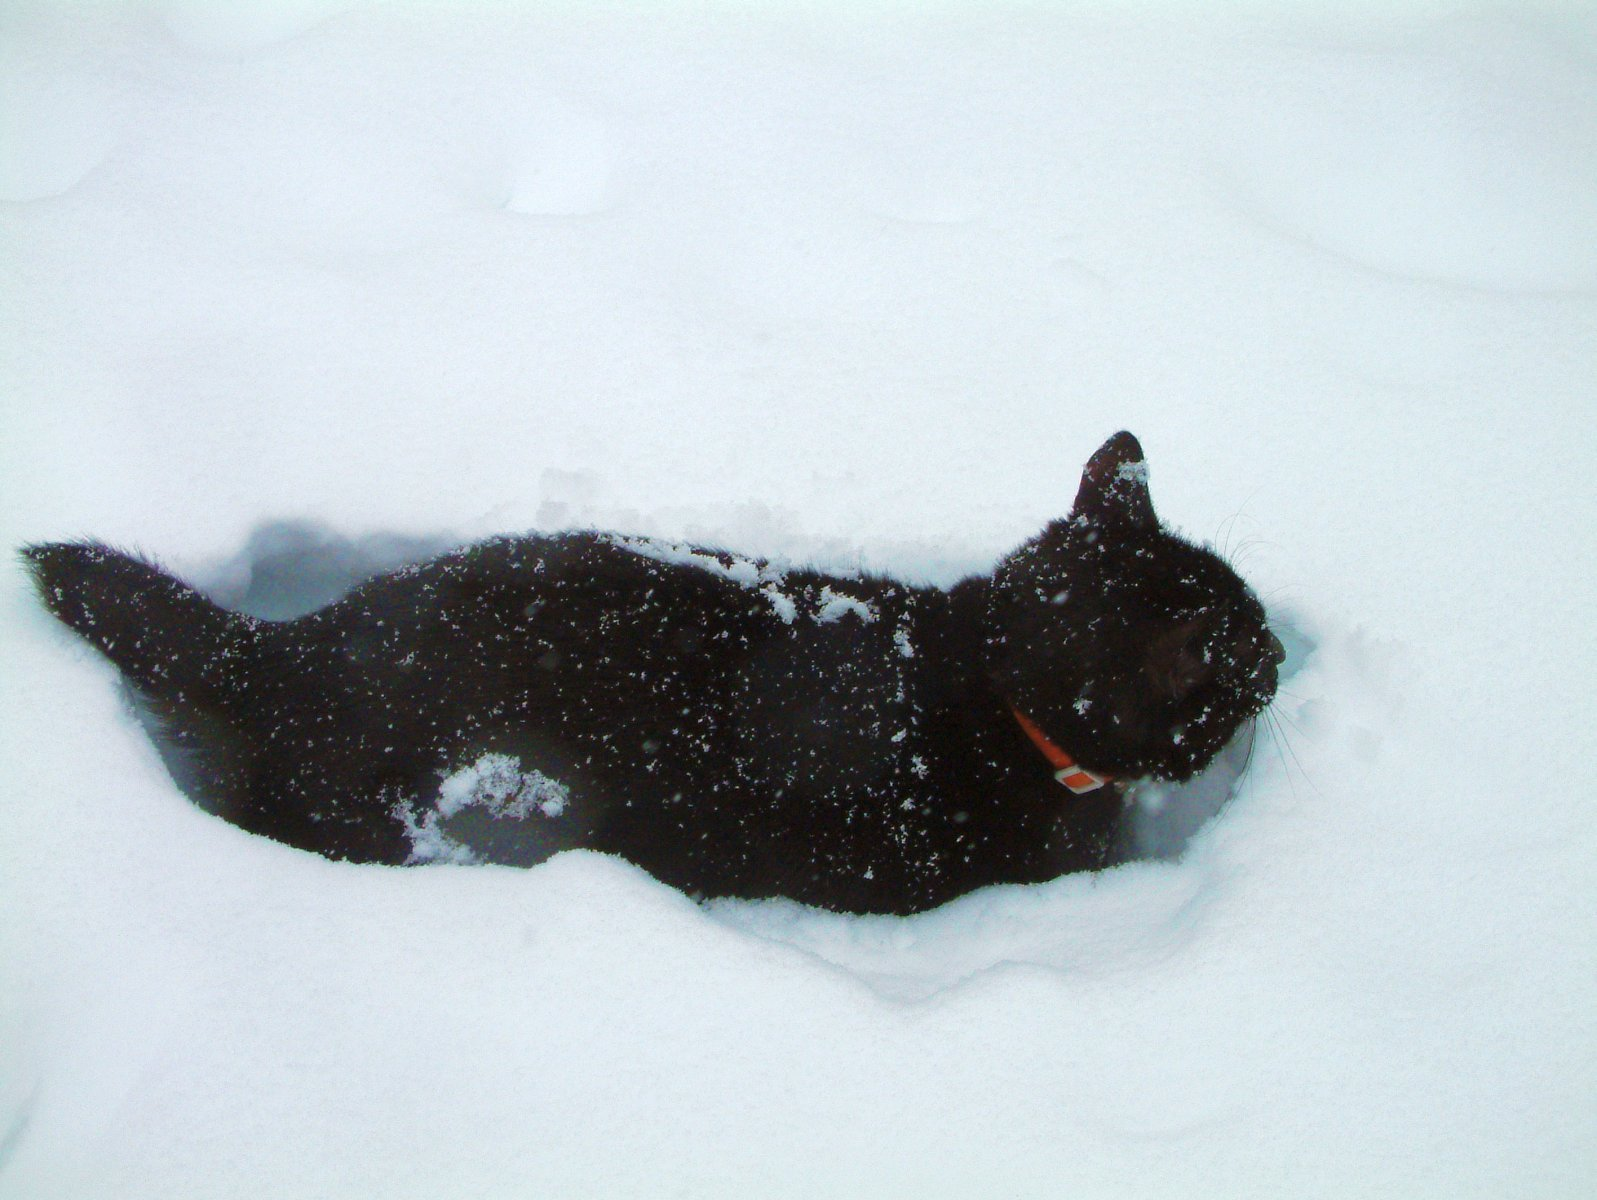 Bodhi in snow